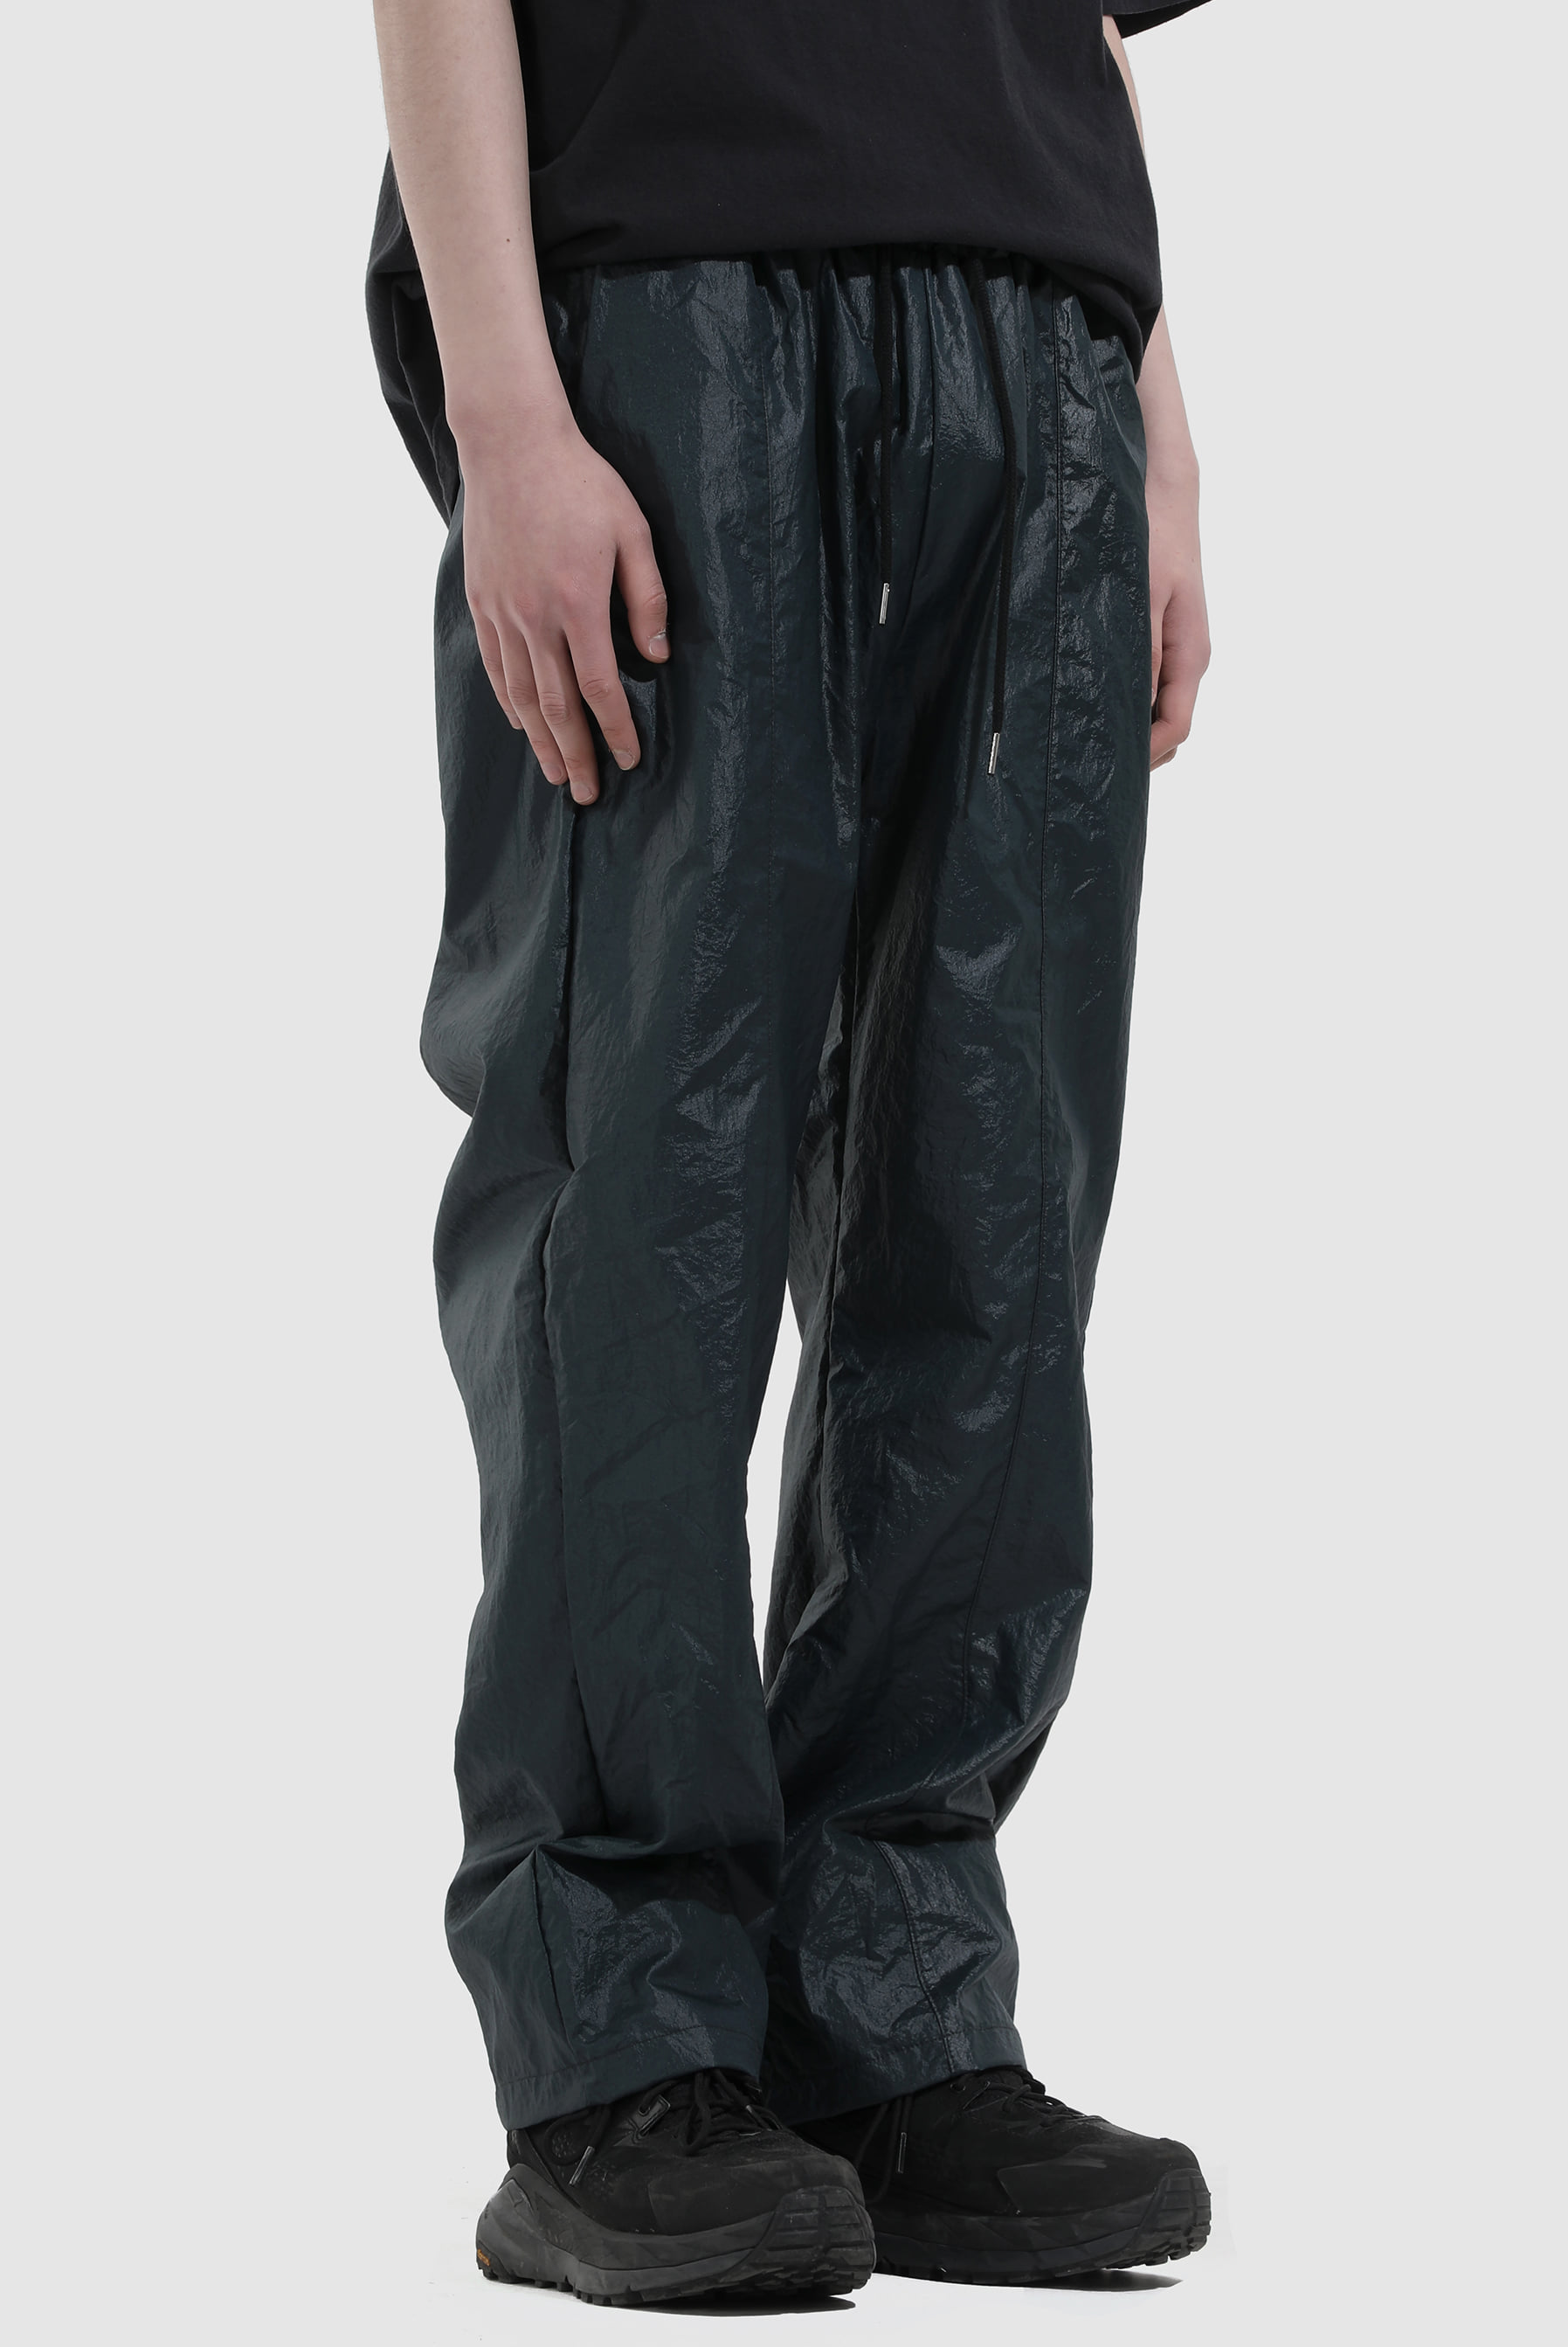 Shinny_Cottied Bending_Pant